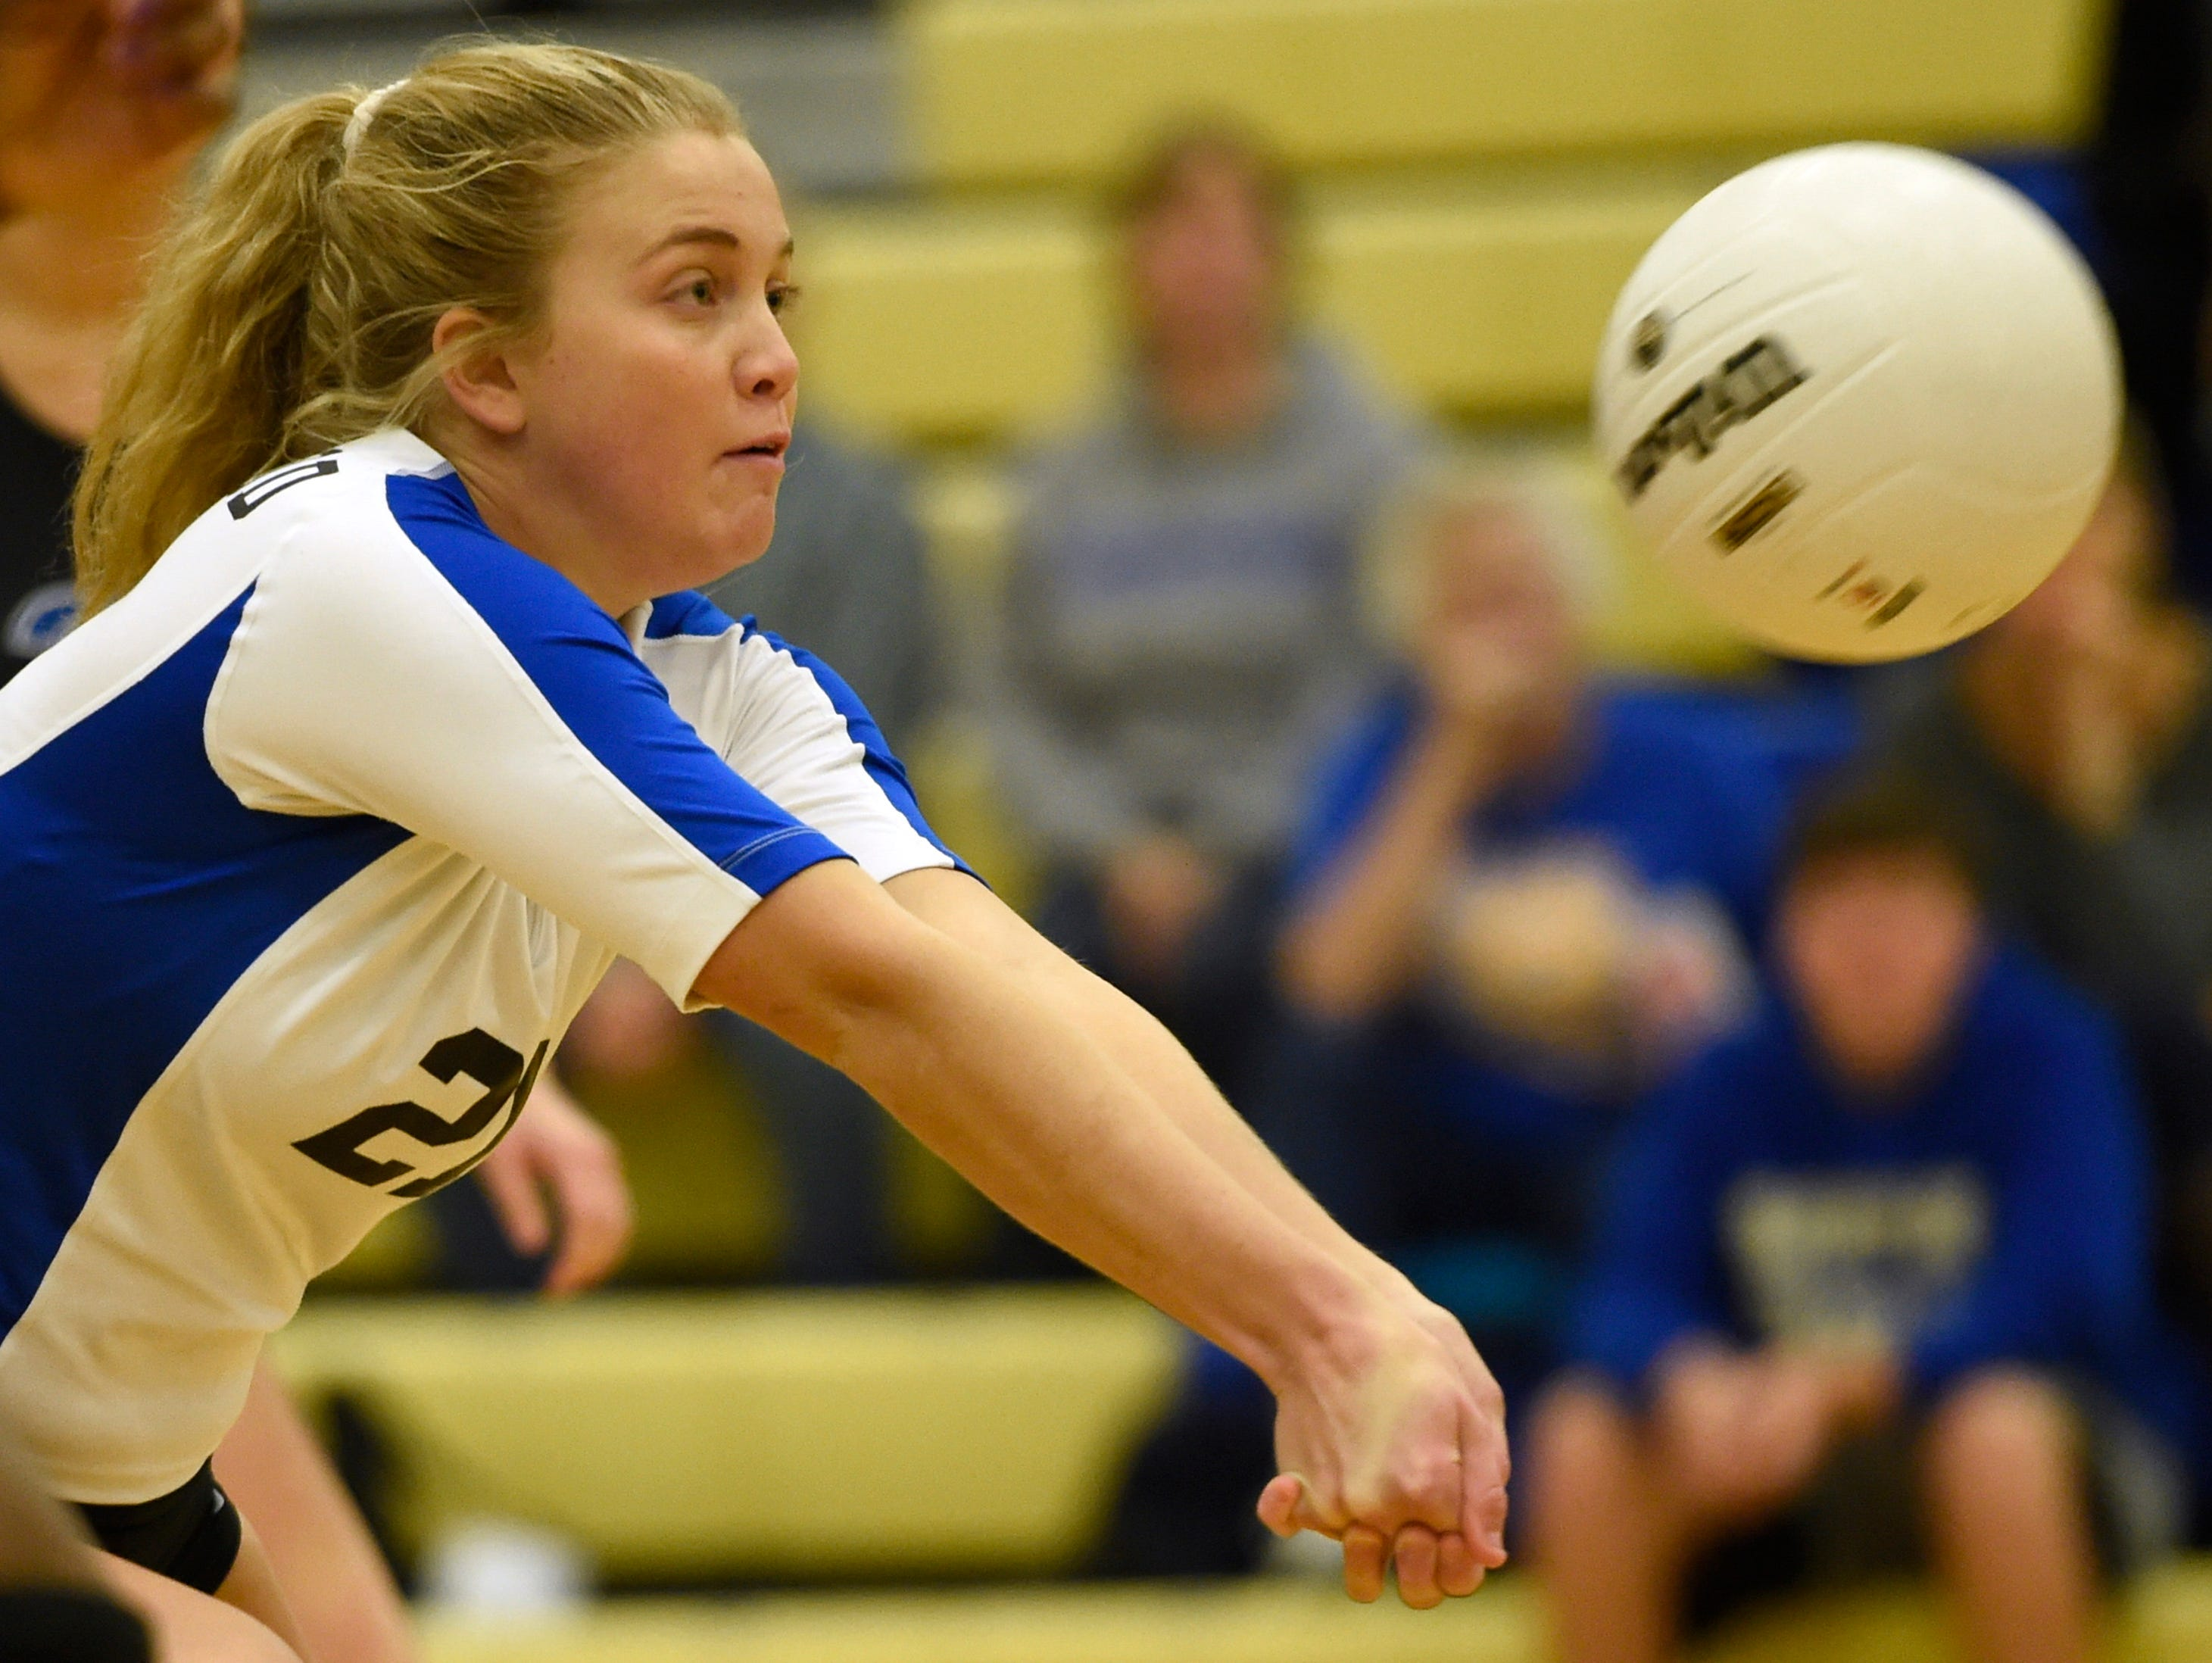 Brentwood's Georgia Cotton bumps the ball to her setter as they take on Portland in the Sub-State Volleyball tournament Thursday Oct. 15, 2015, in Brentwood, Tenn.